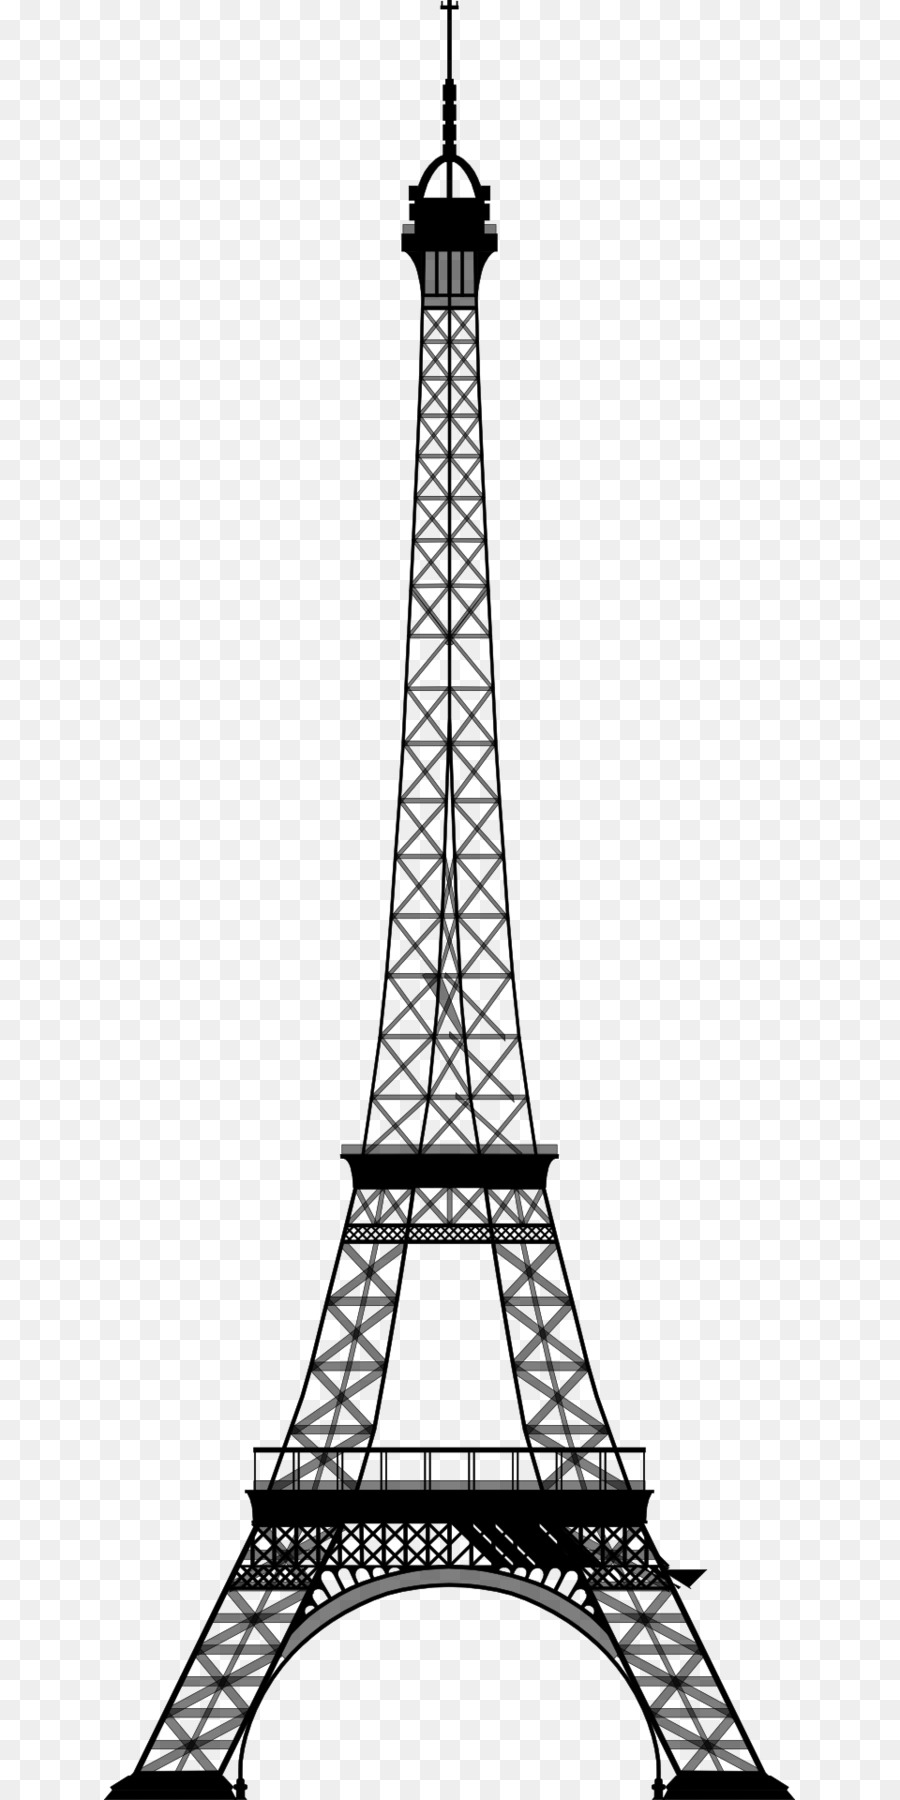 Eiffel Tower Drawing Png Download 960 1920 Free Transparent Eiffel Tower Png Download Cleanpng Kisspng